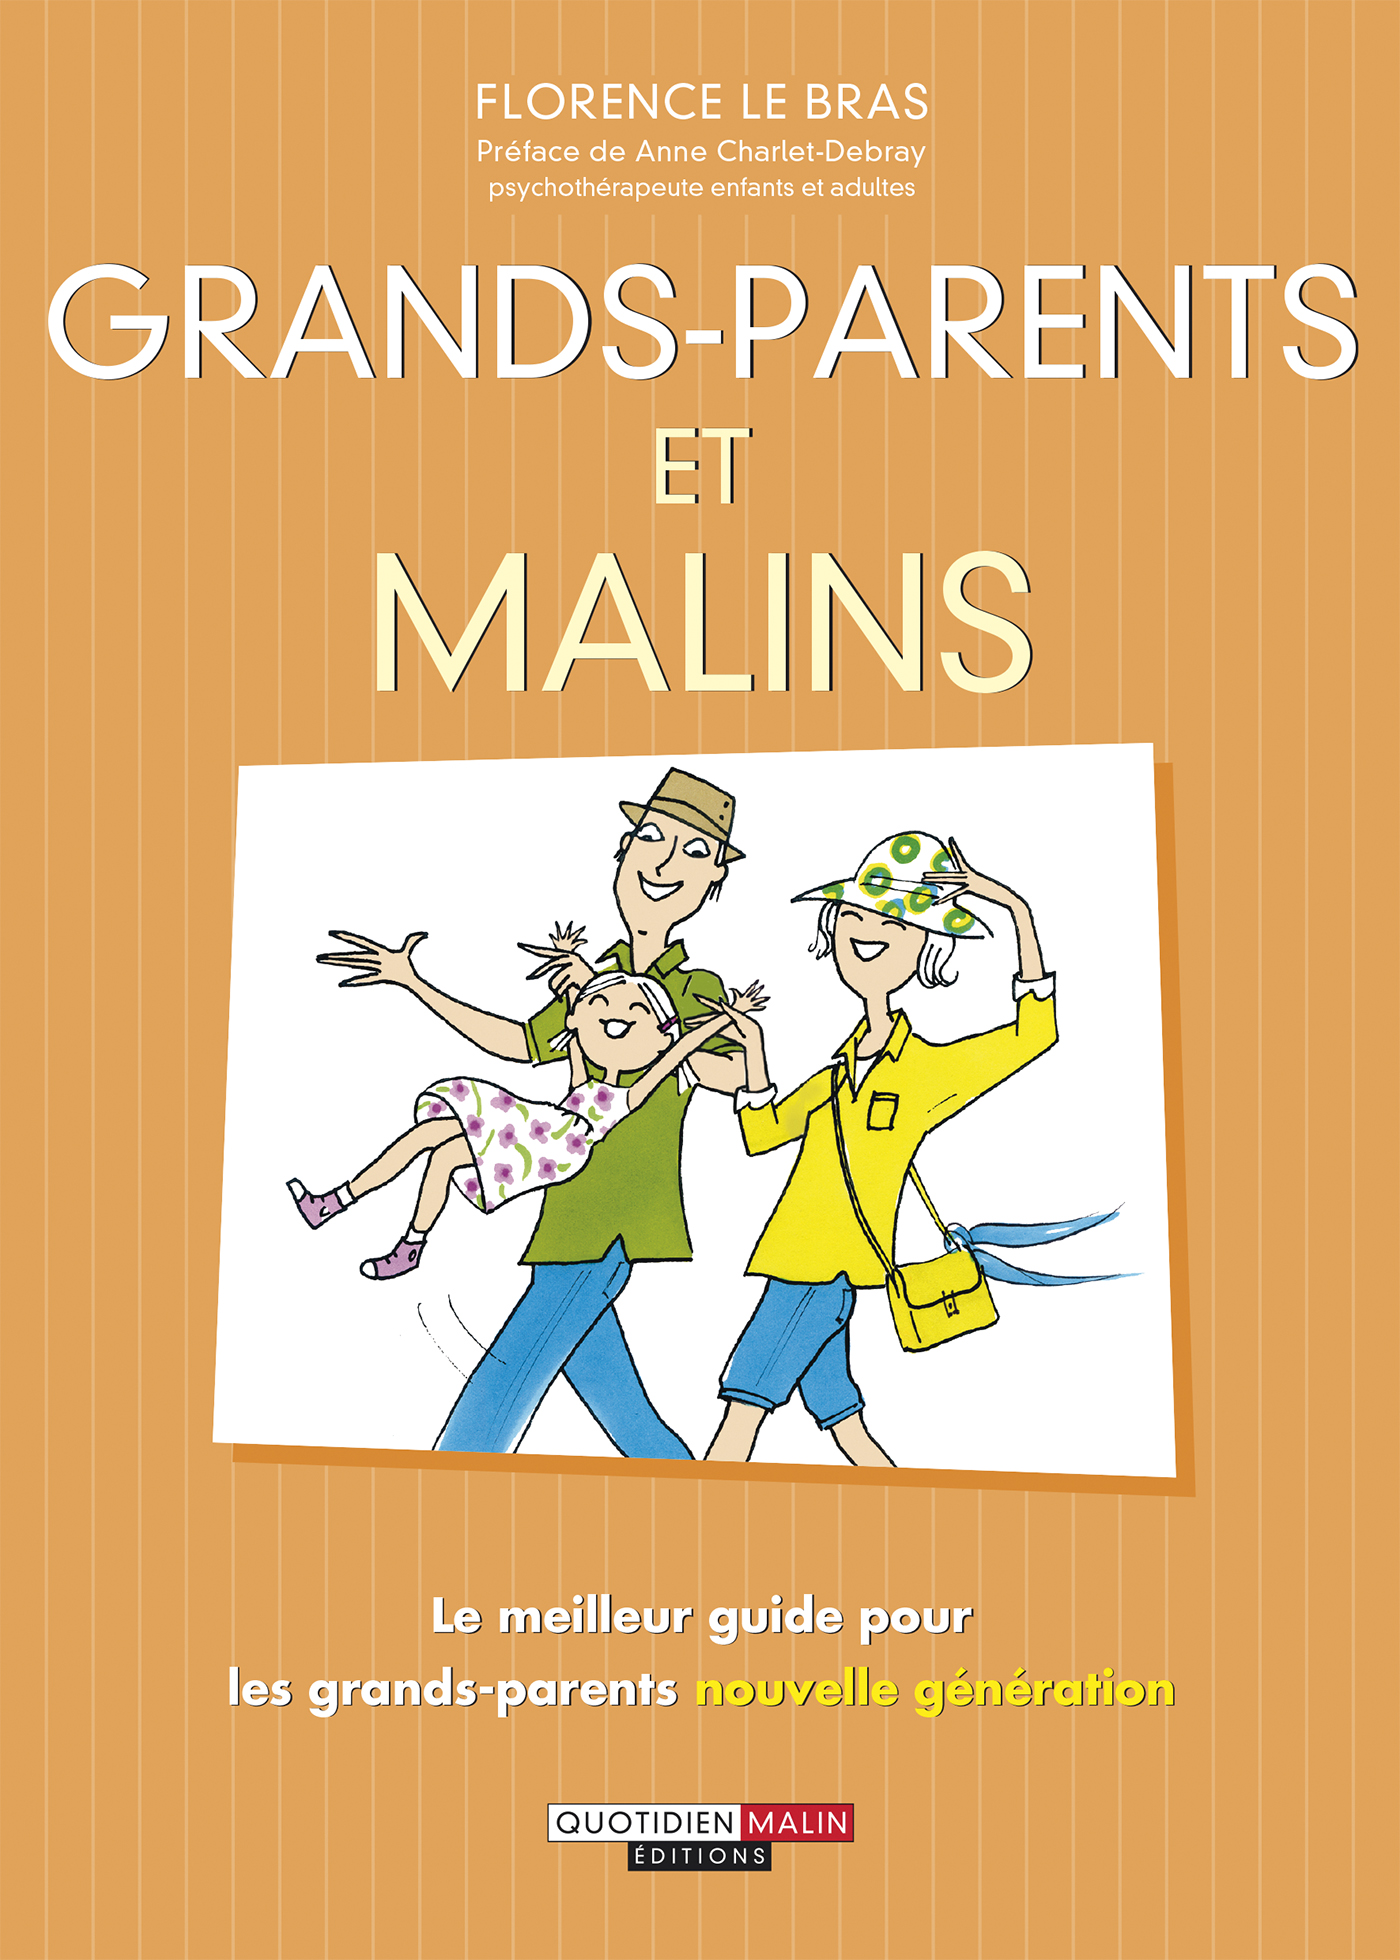 Grands-parents, c'est malin